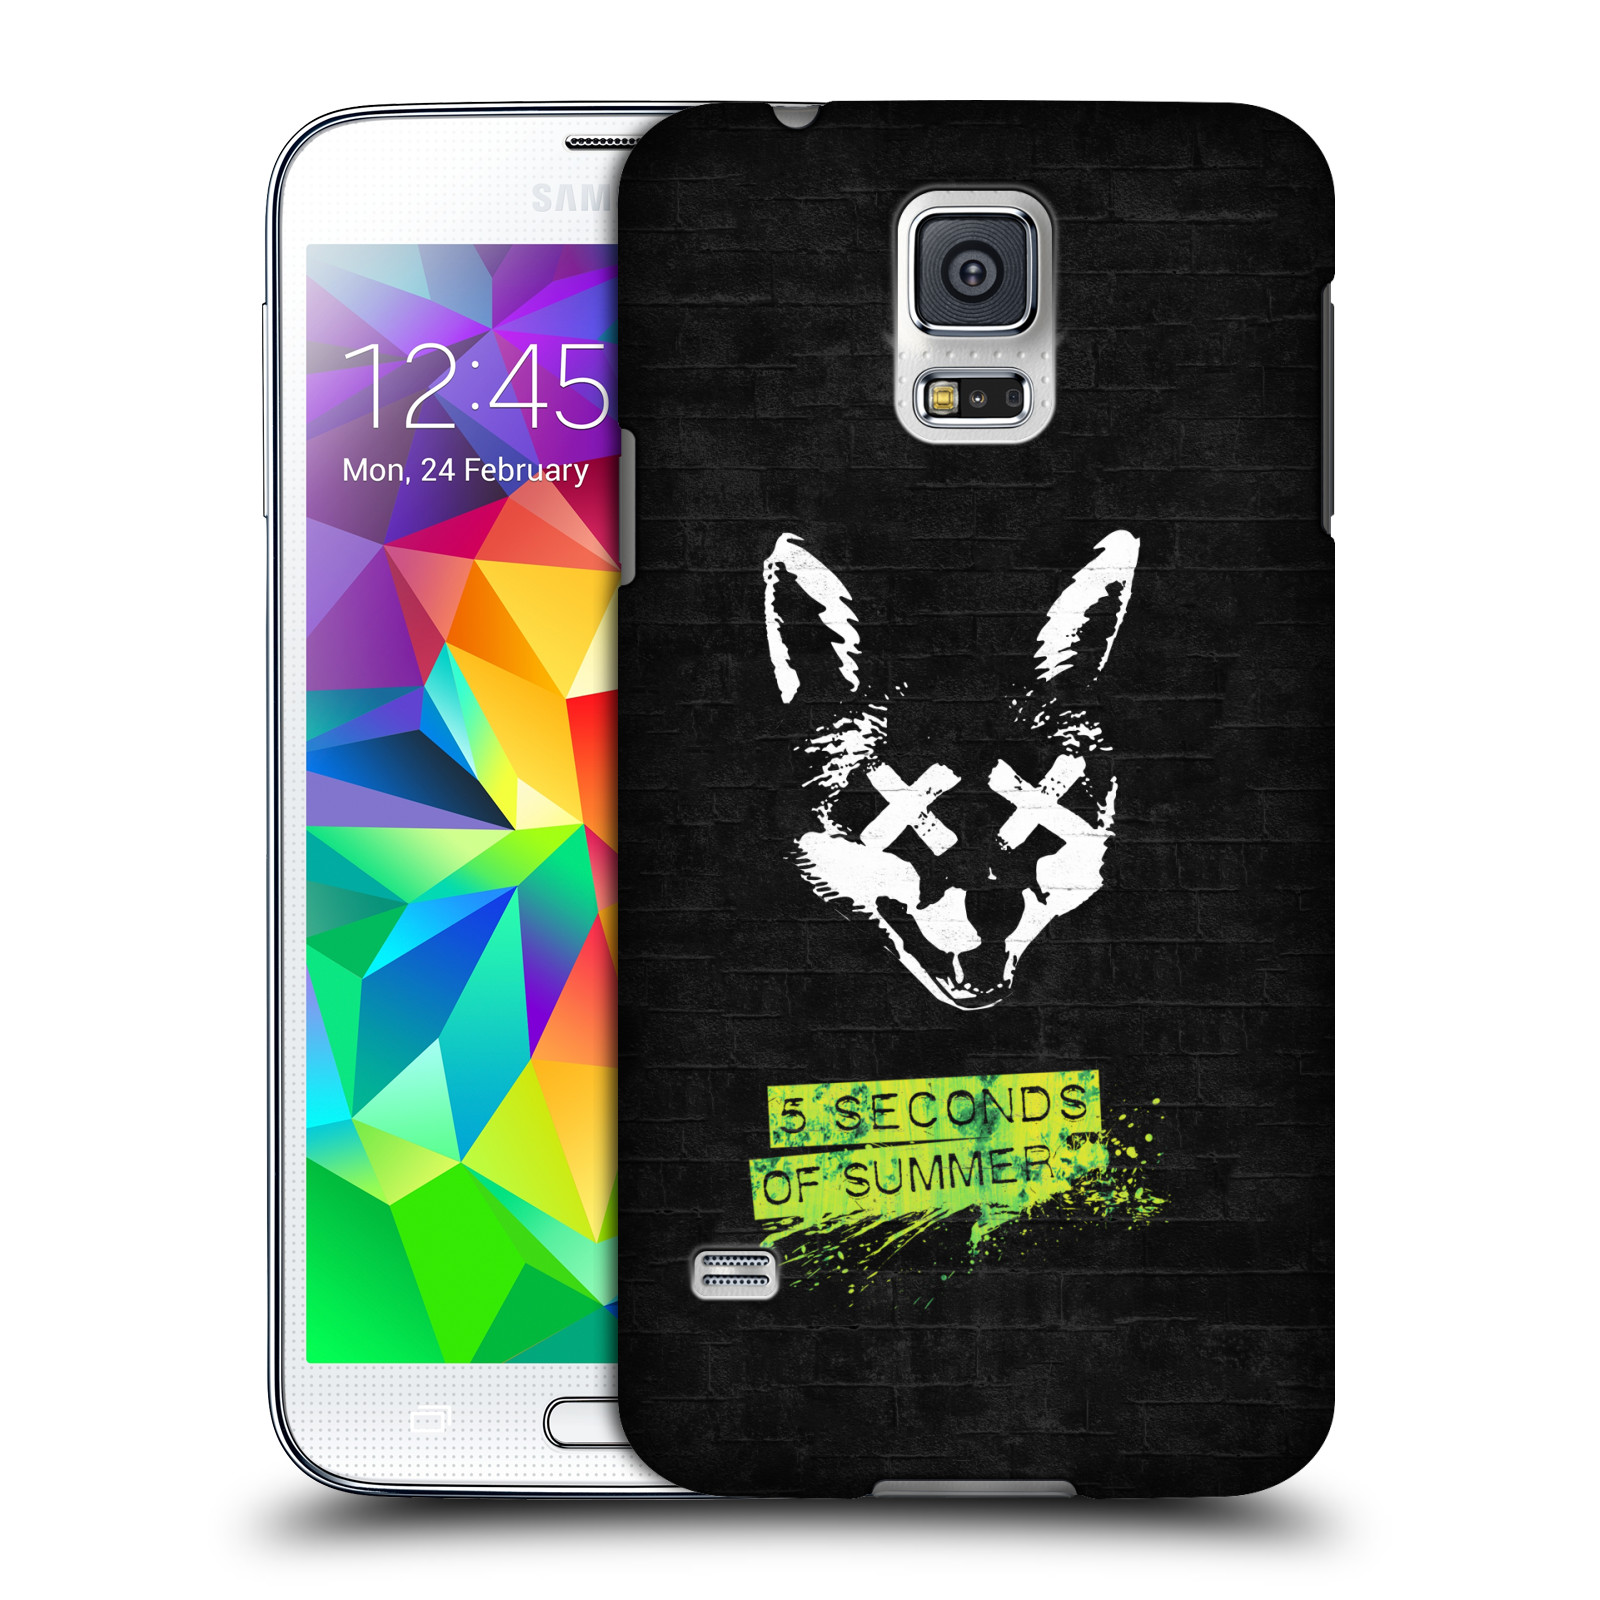 Plastové pouzdro na mobil Samsung Galaxy S5 HEAD CASE 5 Seconds of Summer - Fox